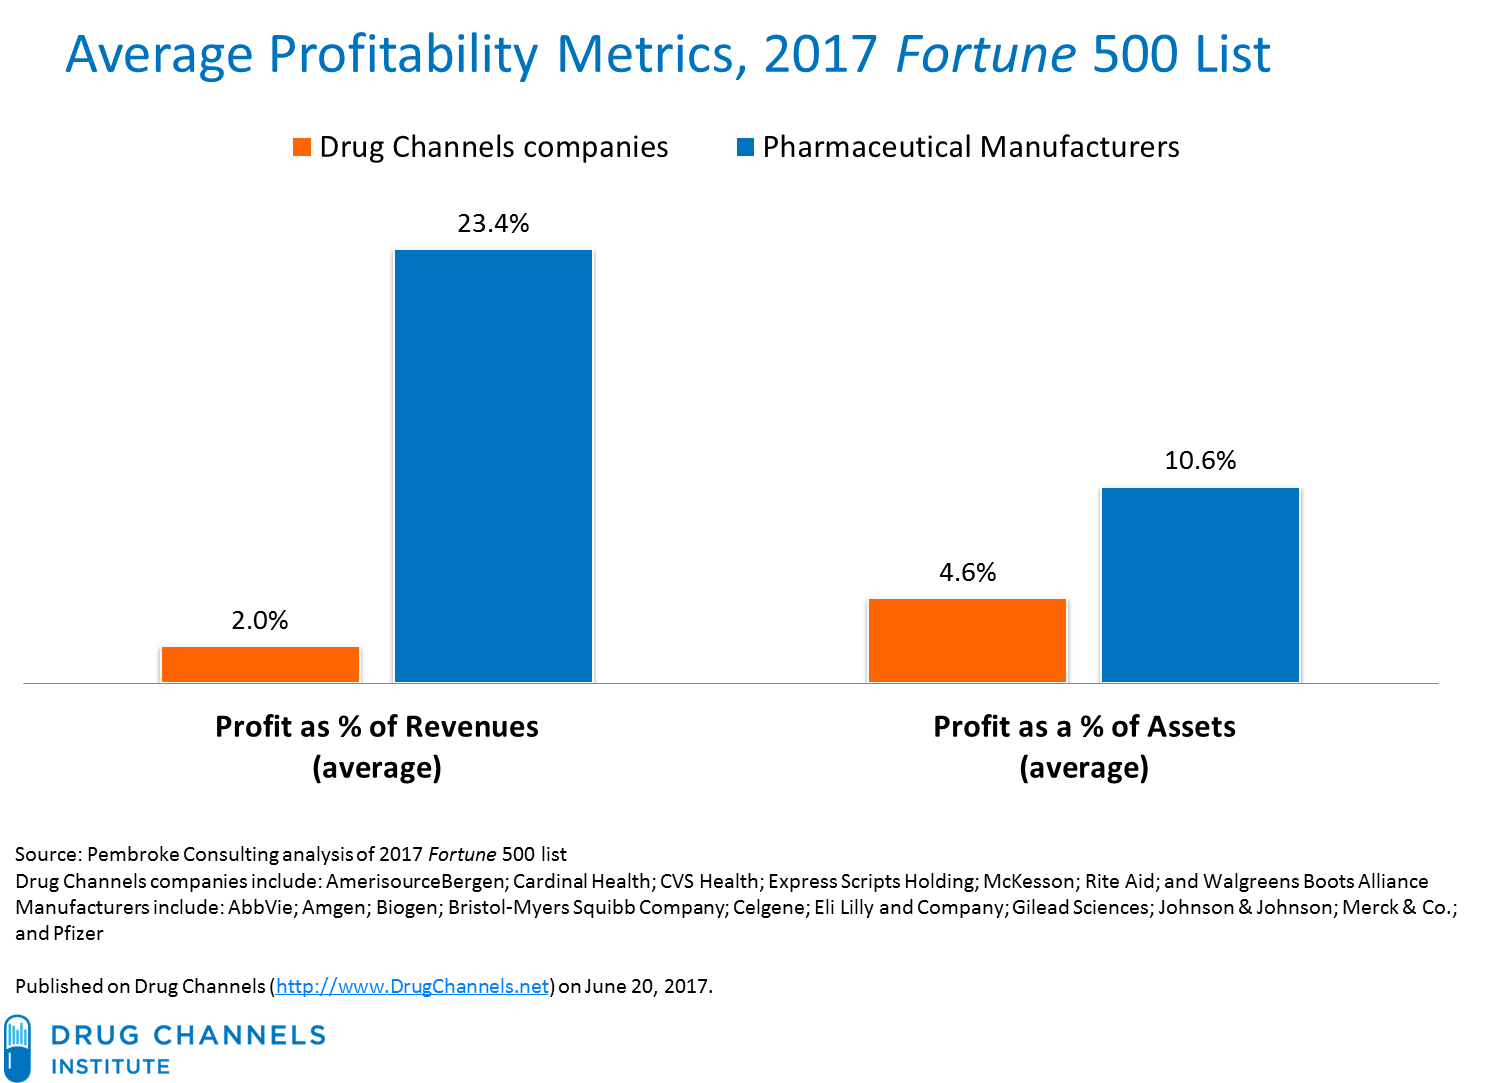 Drug Channels: Profits in the 2017 Fortune 500